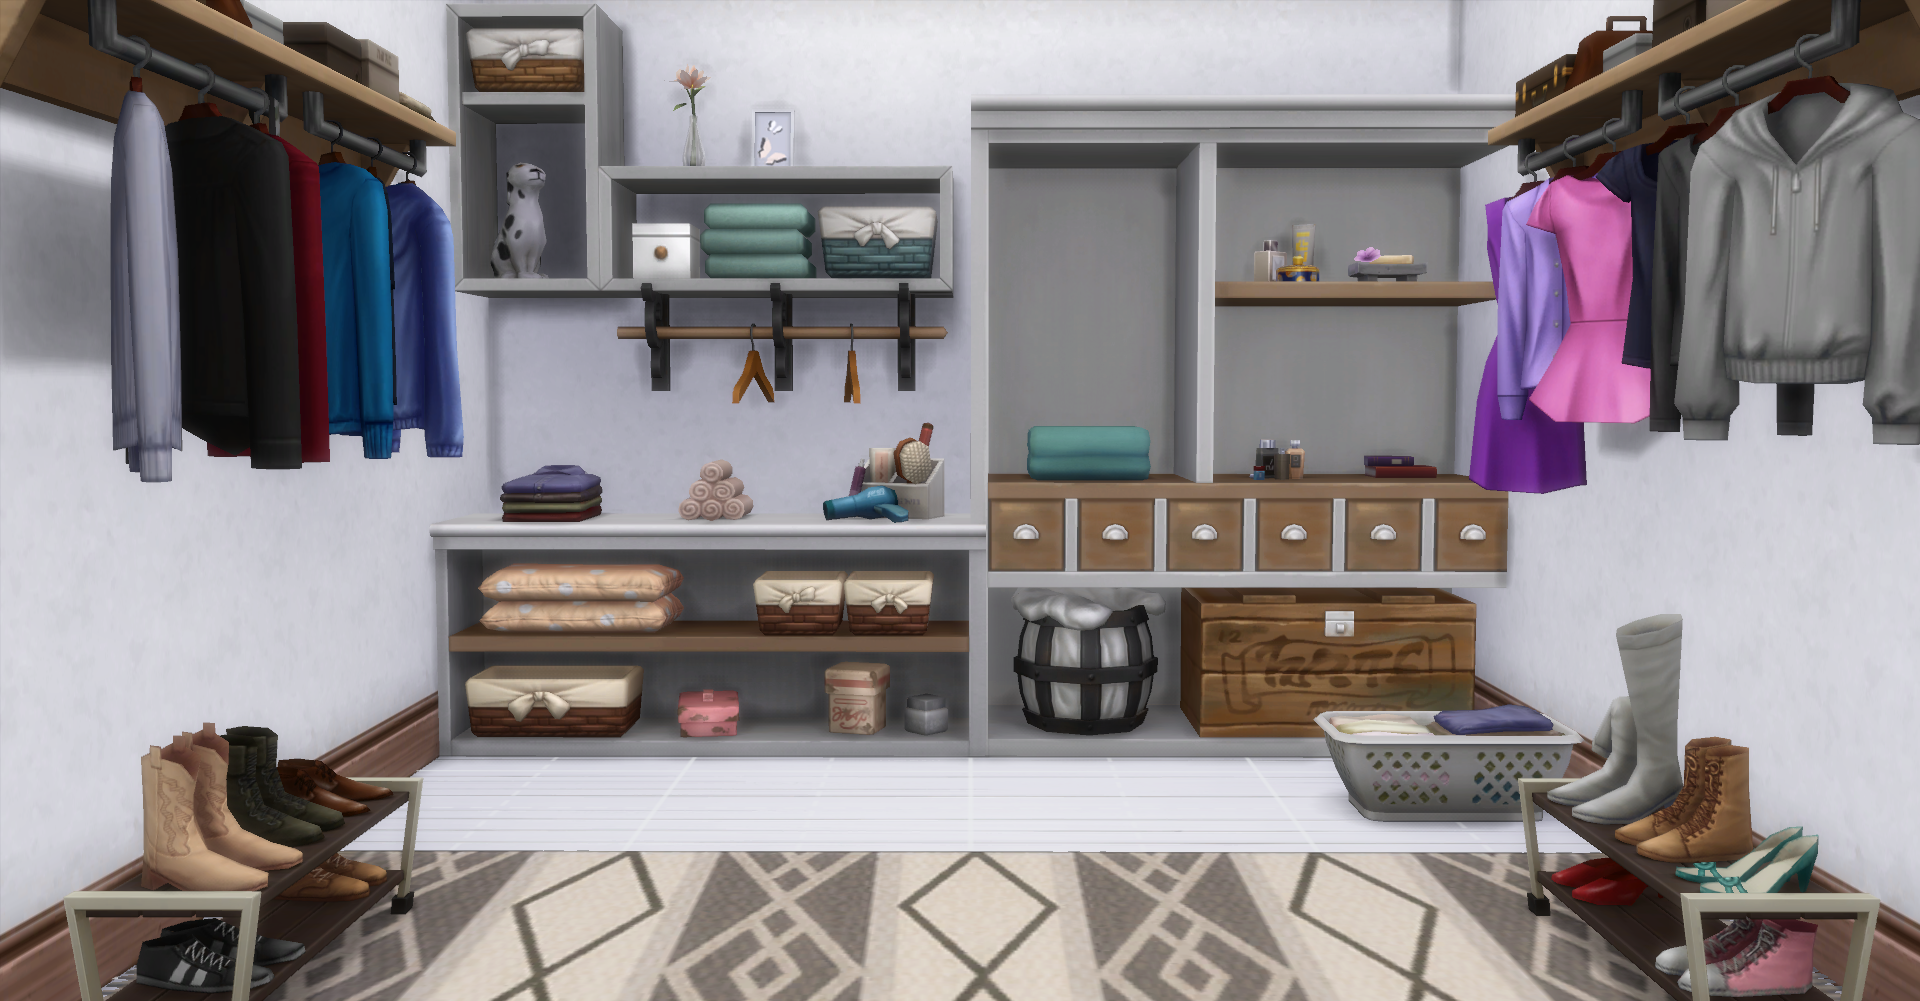 Inspiration Corner Decorating With Laundry Day Sp Items Simsvip,Very Small Narrow Bathroom Ideas